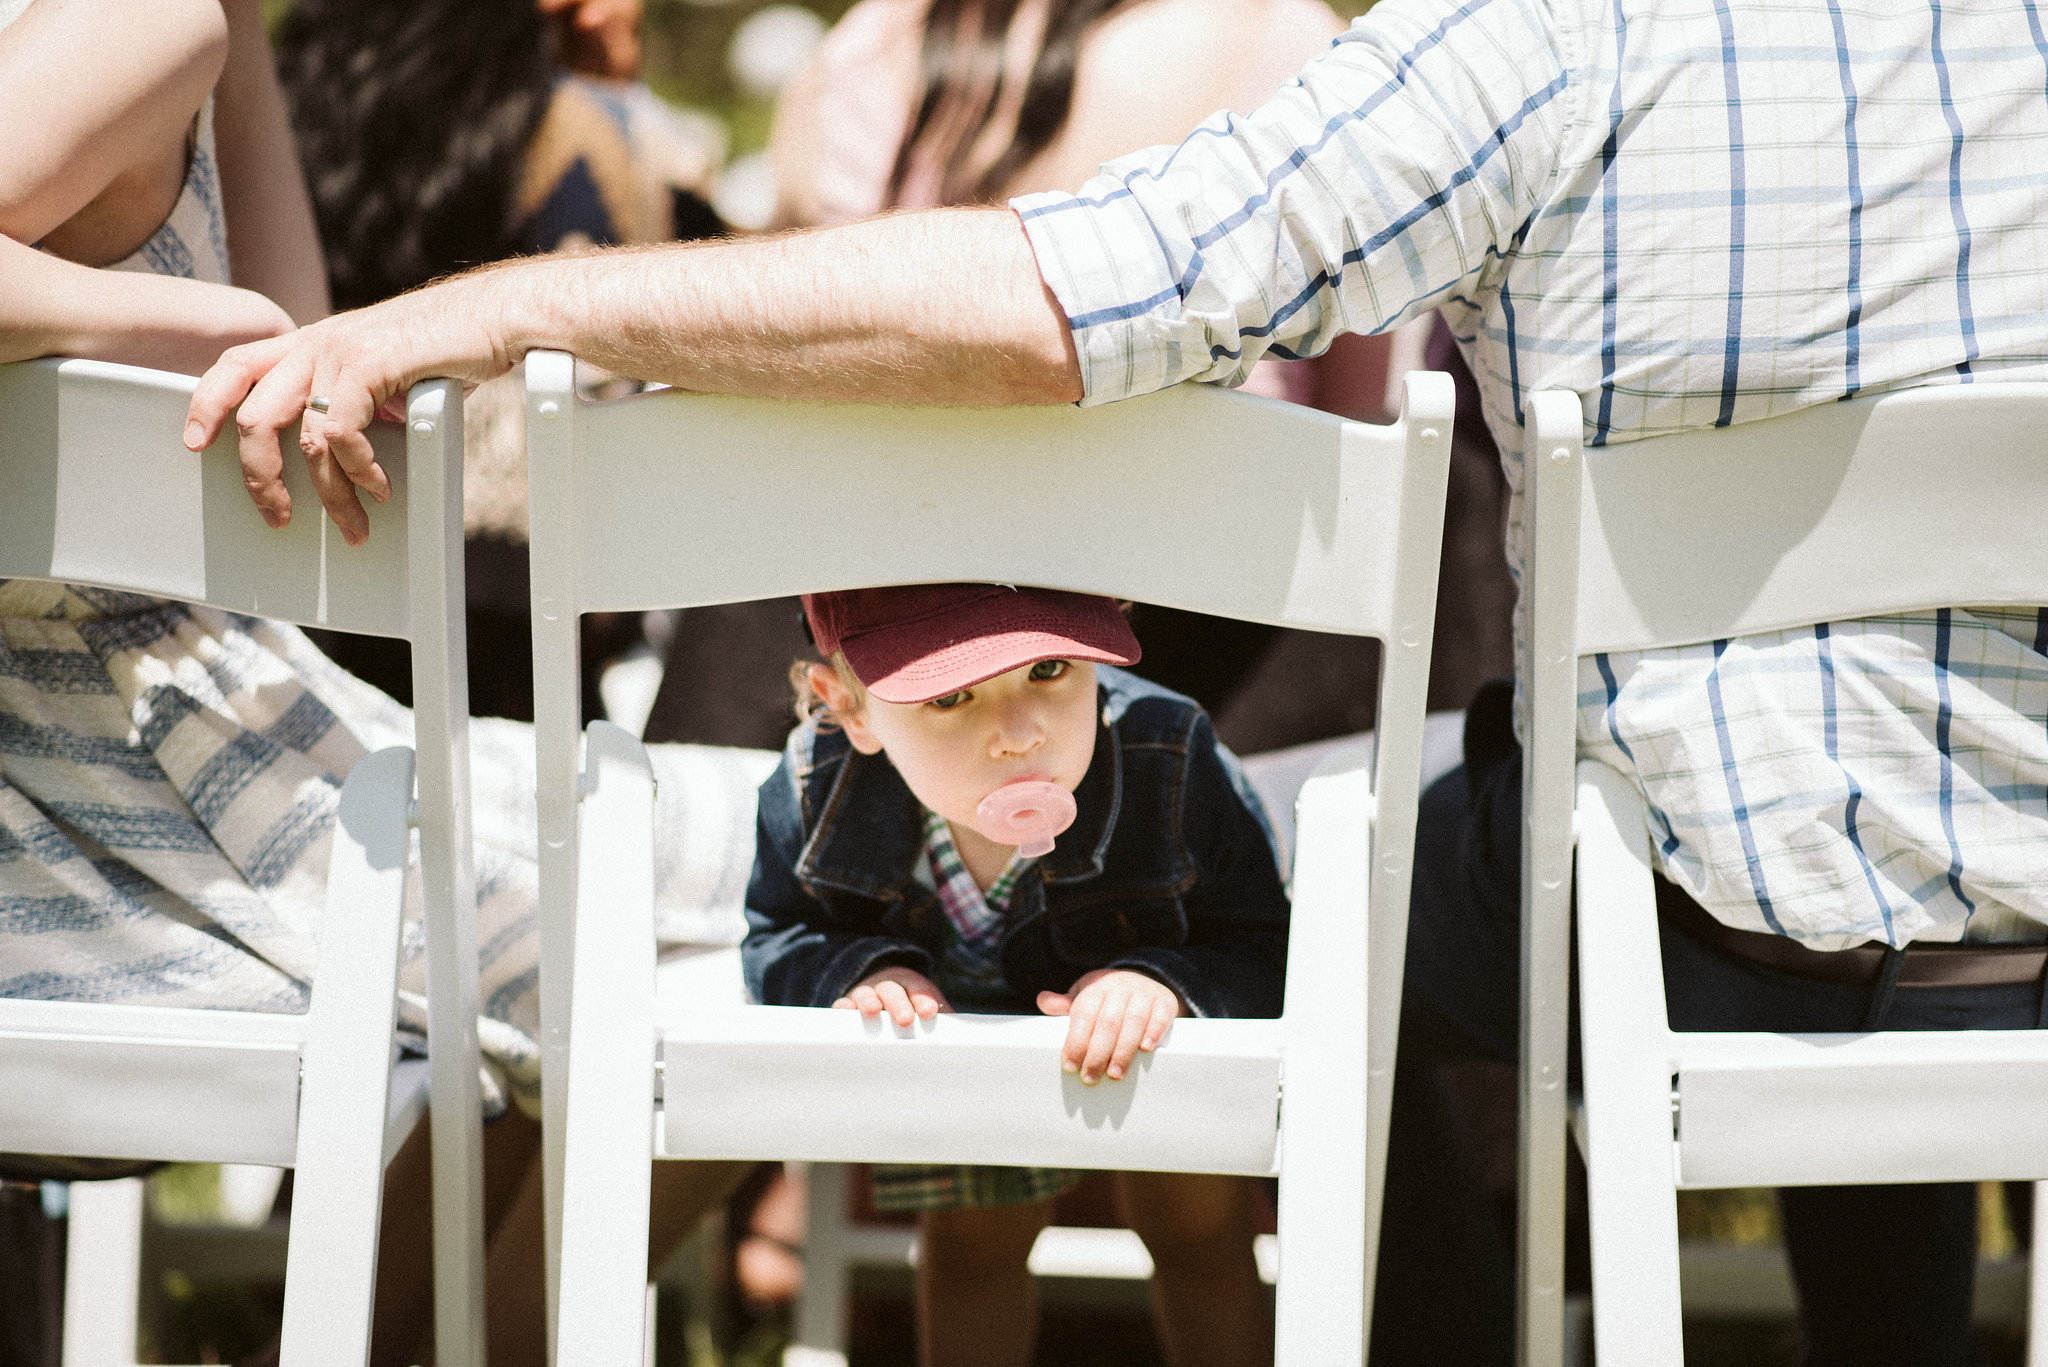 Spring Outdoor Wedding, Park, Baltimore Wedding Photographer, DIY, Classic, Upcycled, Garden Party, Romantic, Little Boy at Ceremony